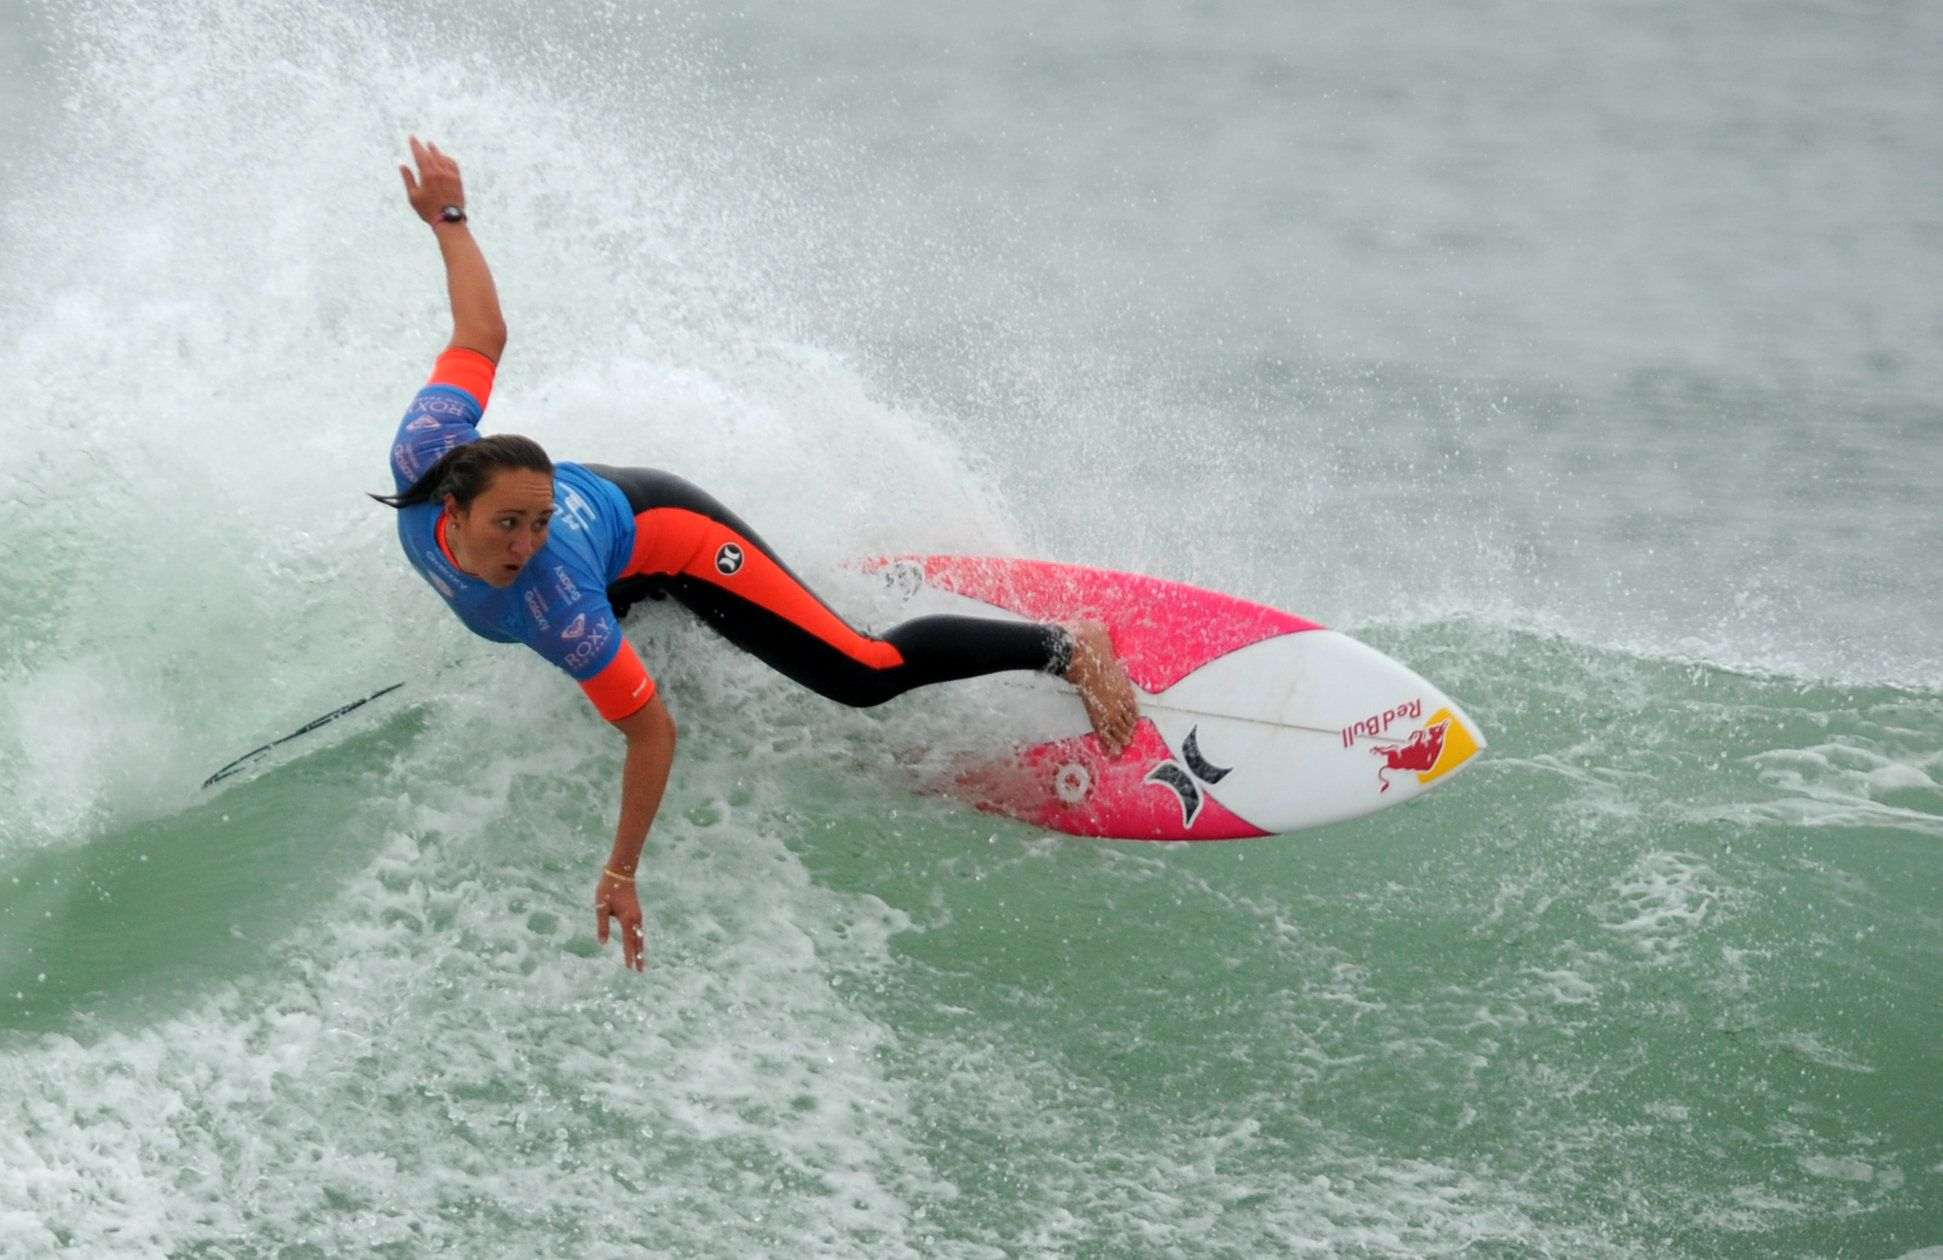 USA's Carissa Moore competes in the final of the French stage of the World Surf League in Hossegor, on October 12, 2016.  / AFP / Gaizka IROZ        (Photo credit should read GAIZKA IROZ/AFP/Getty Images)